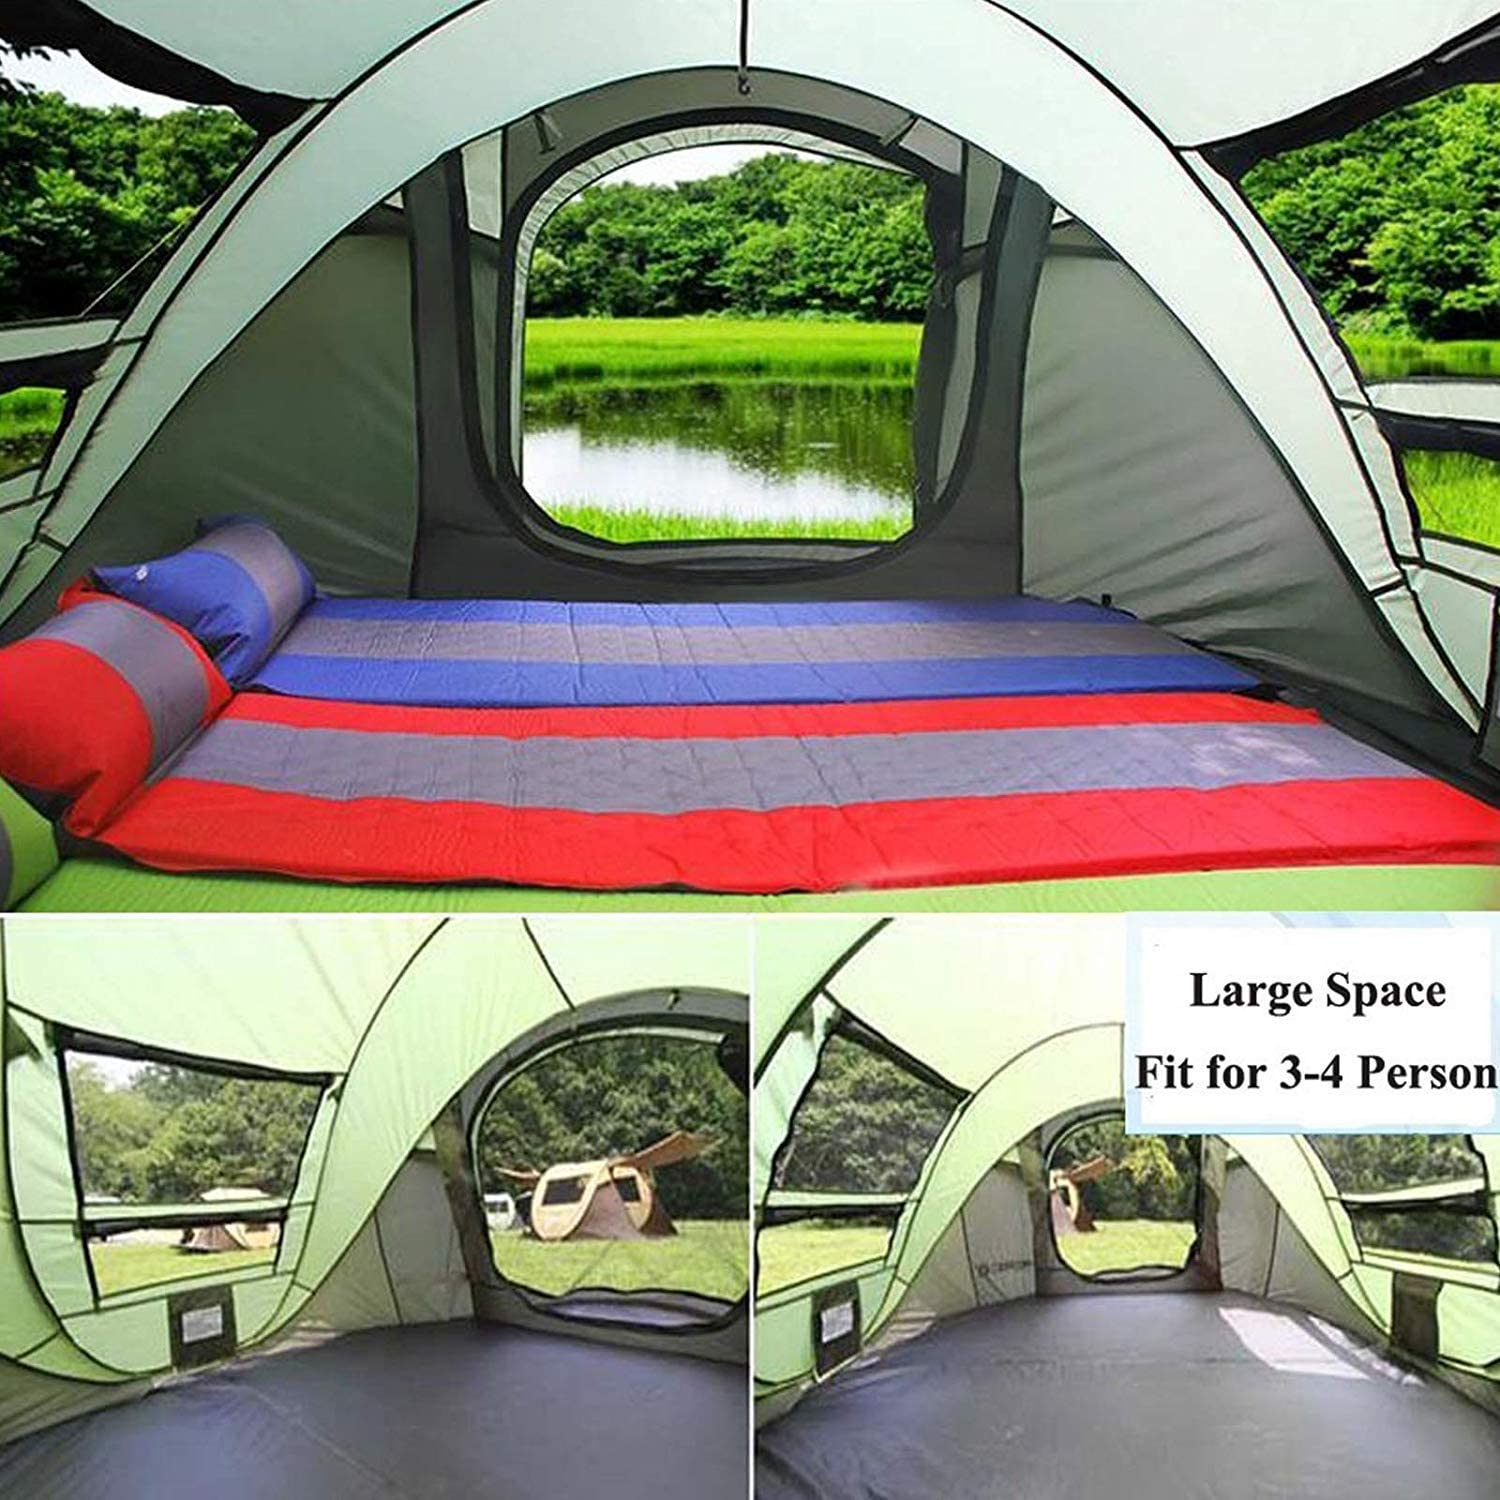 Happybuy Instant Pop Up Tent Water-Resistant 4 Person Tents for Camping Automatic and Easy Setup in Seconds